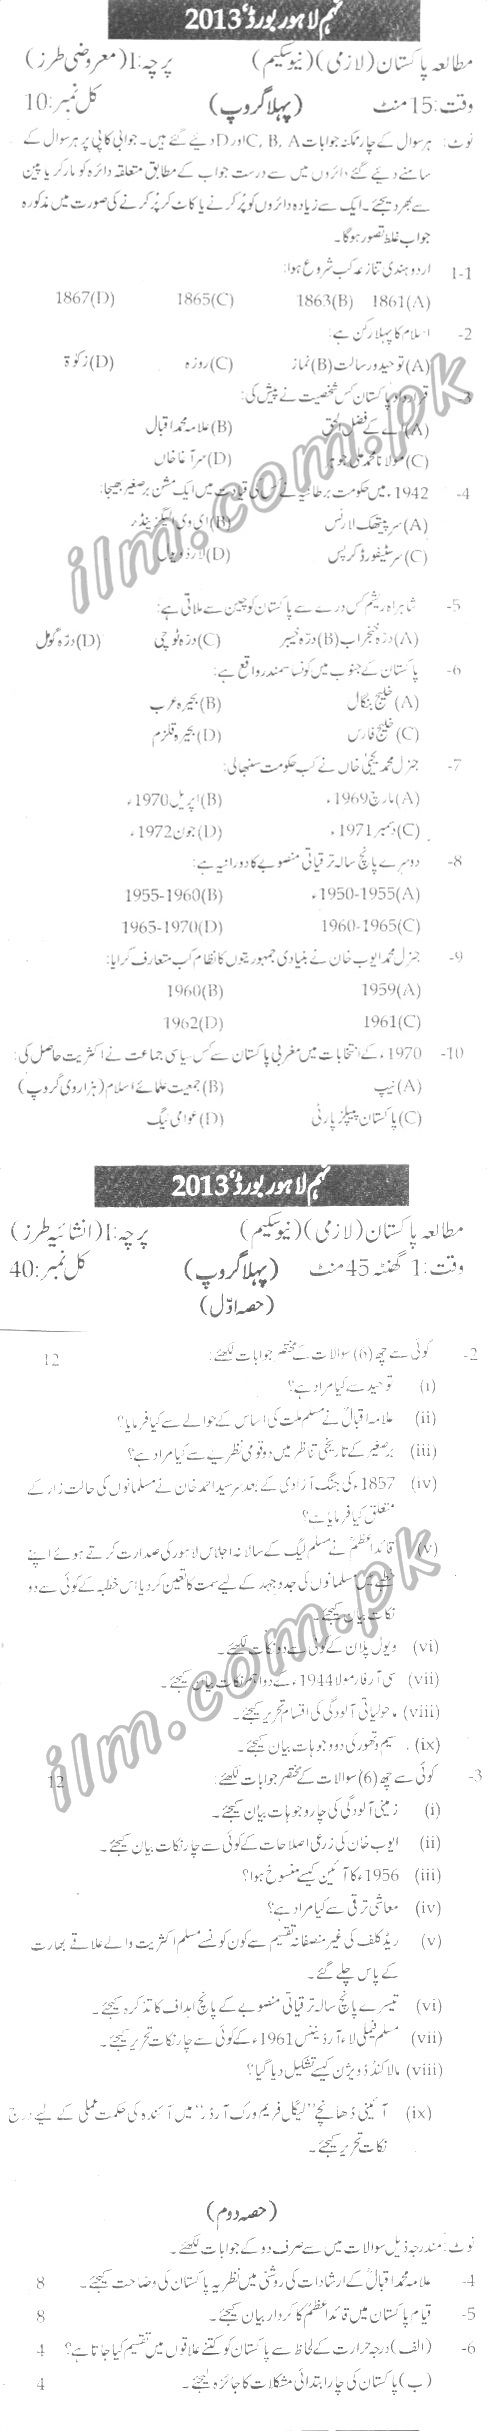 up to date papers lahore board intermediate Past papers and up to date papers of lahore board, punjab university and all the educational boards and universities of pakistan are available here past papers 2017 - matric, intermediate, bachelors masters of various educational boards, colleges, universities of pakistan.